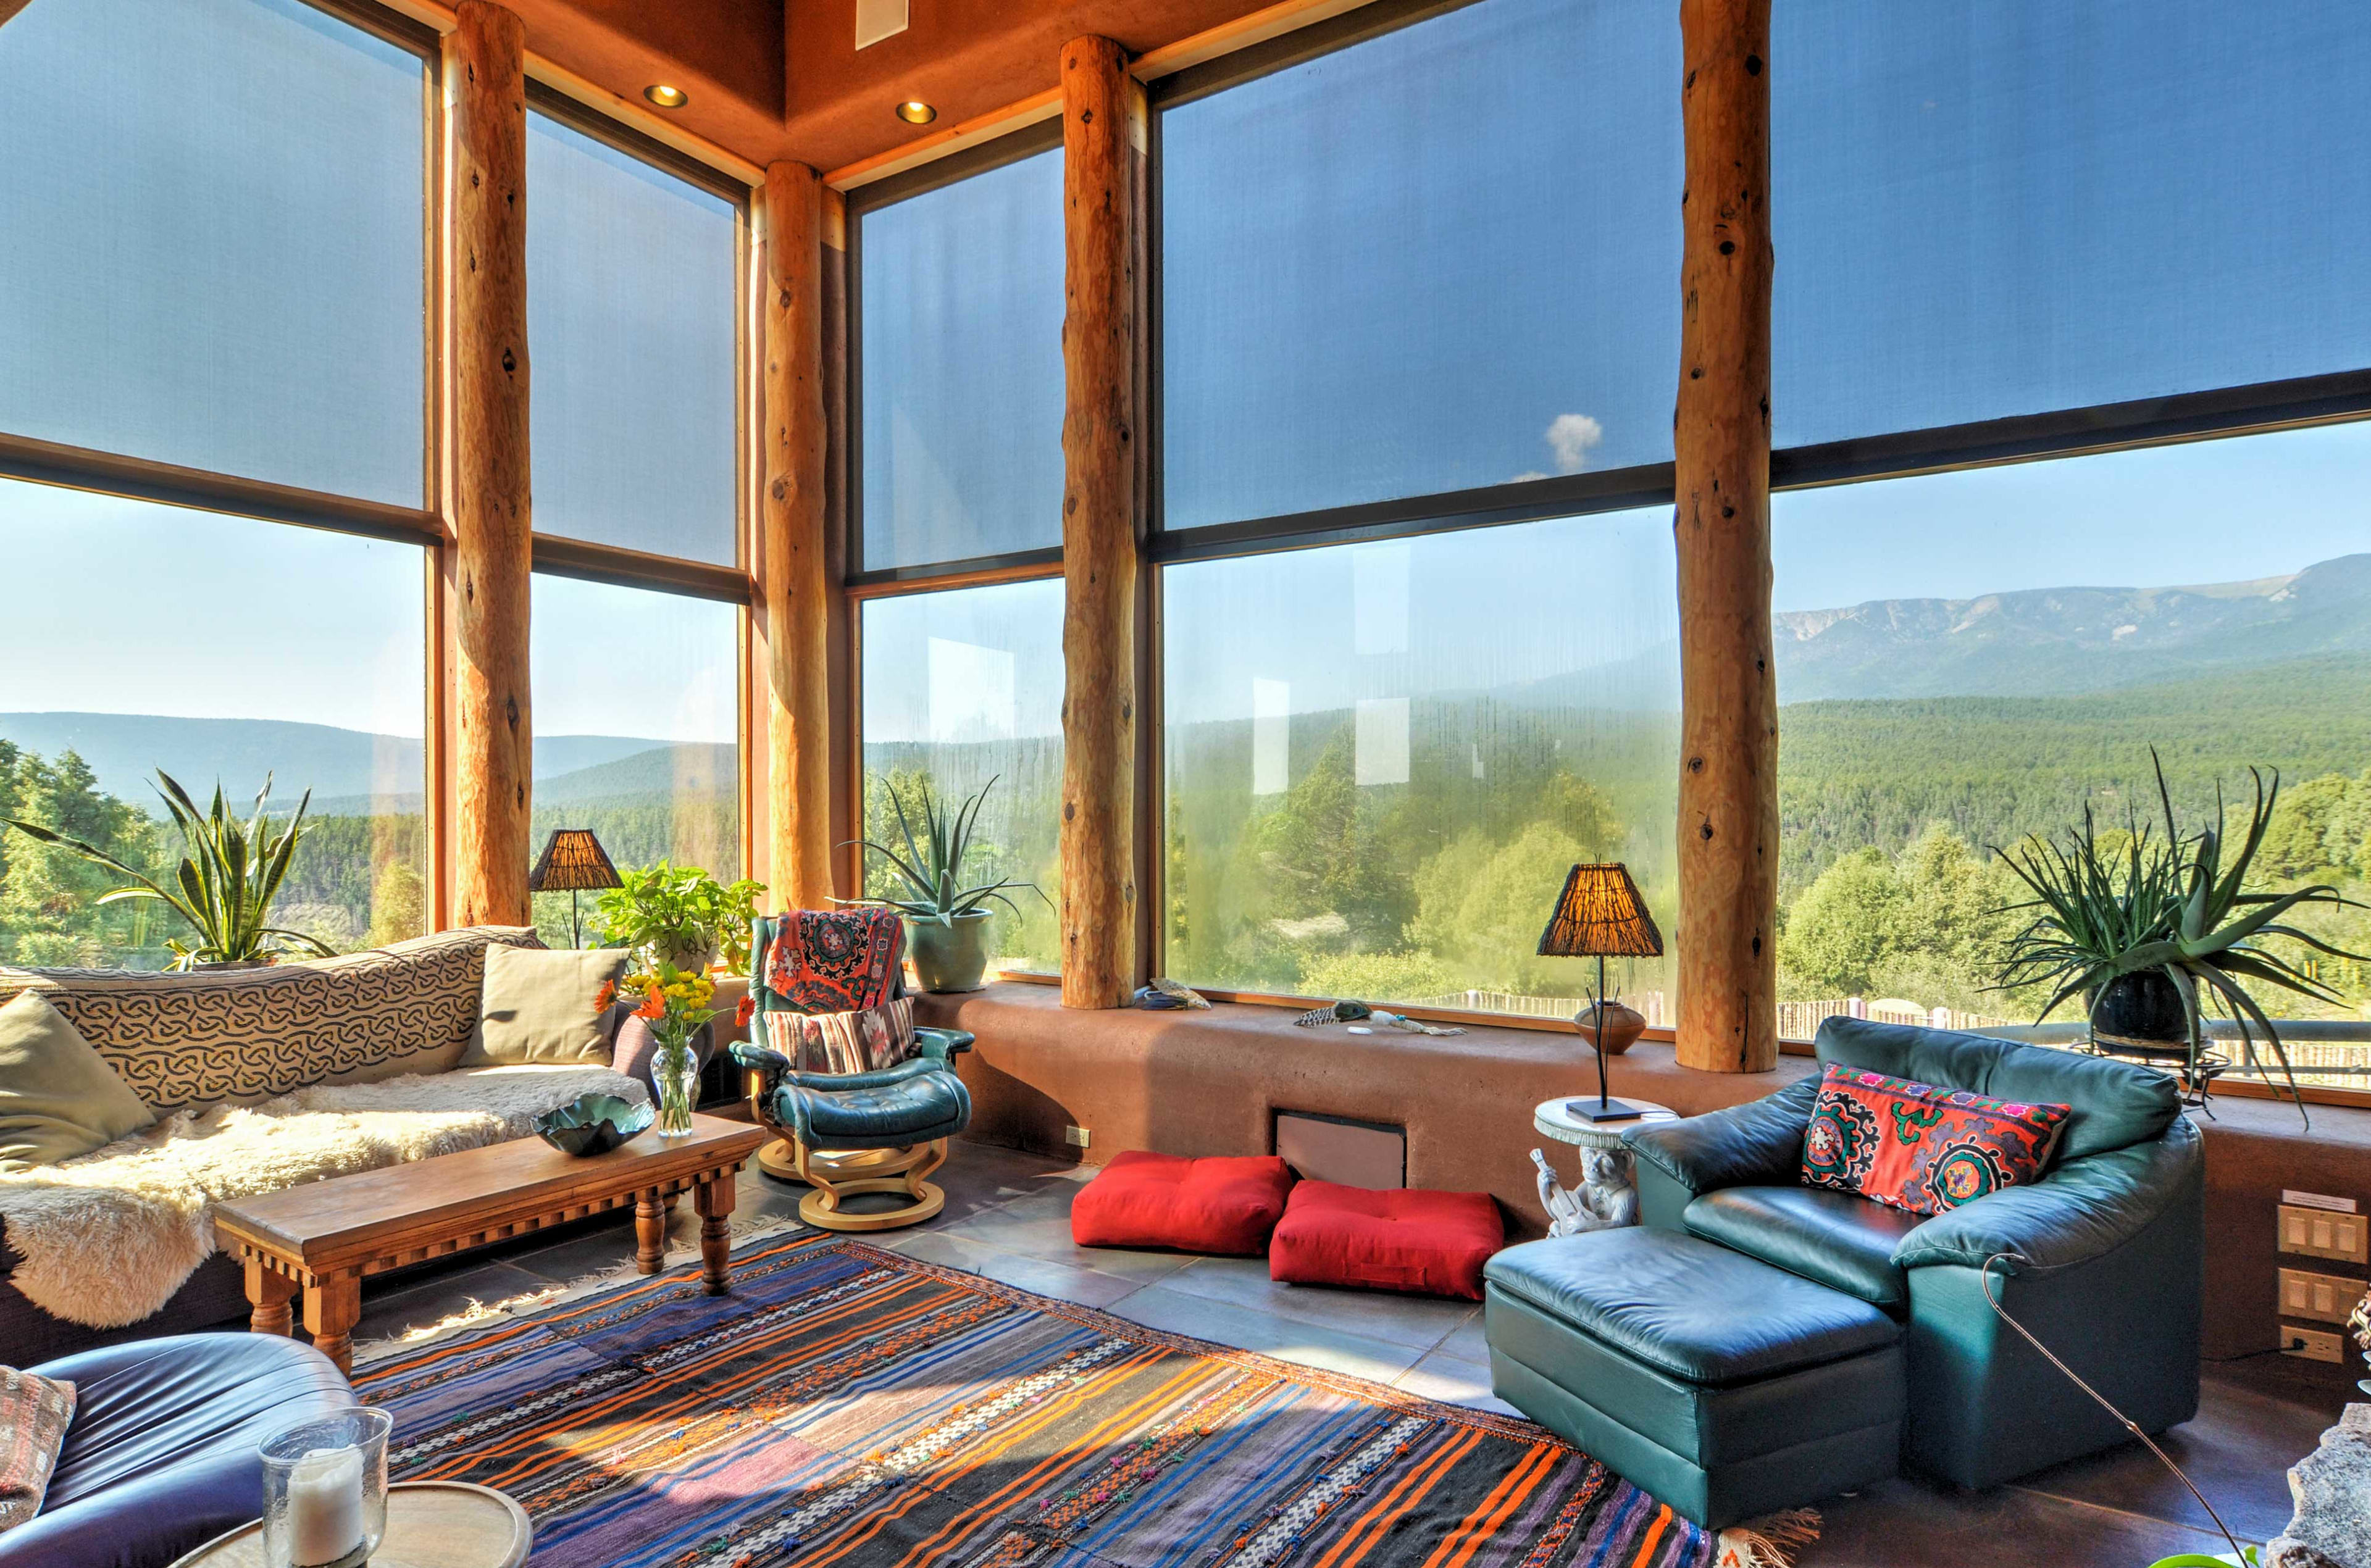 Nestled on a 10-acre hilltop, this home for 14 has a hot tub and mountain views.